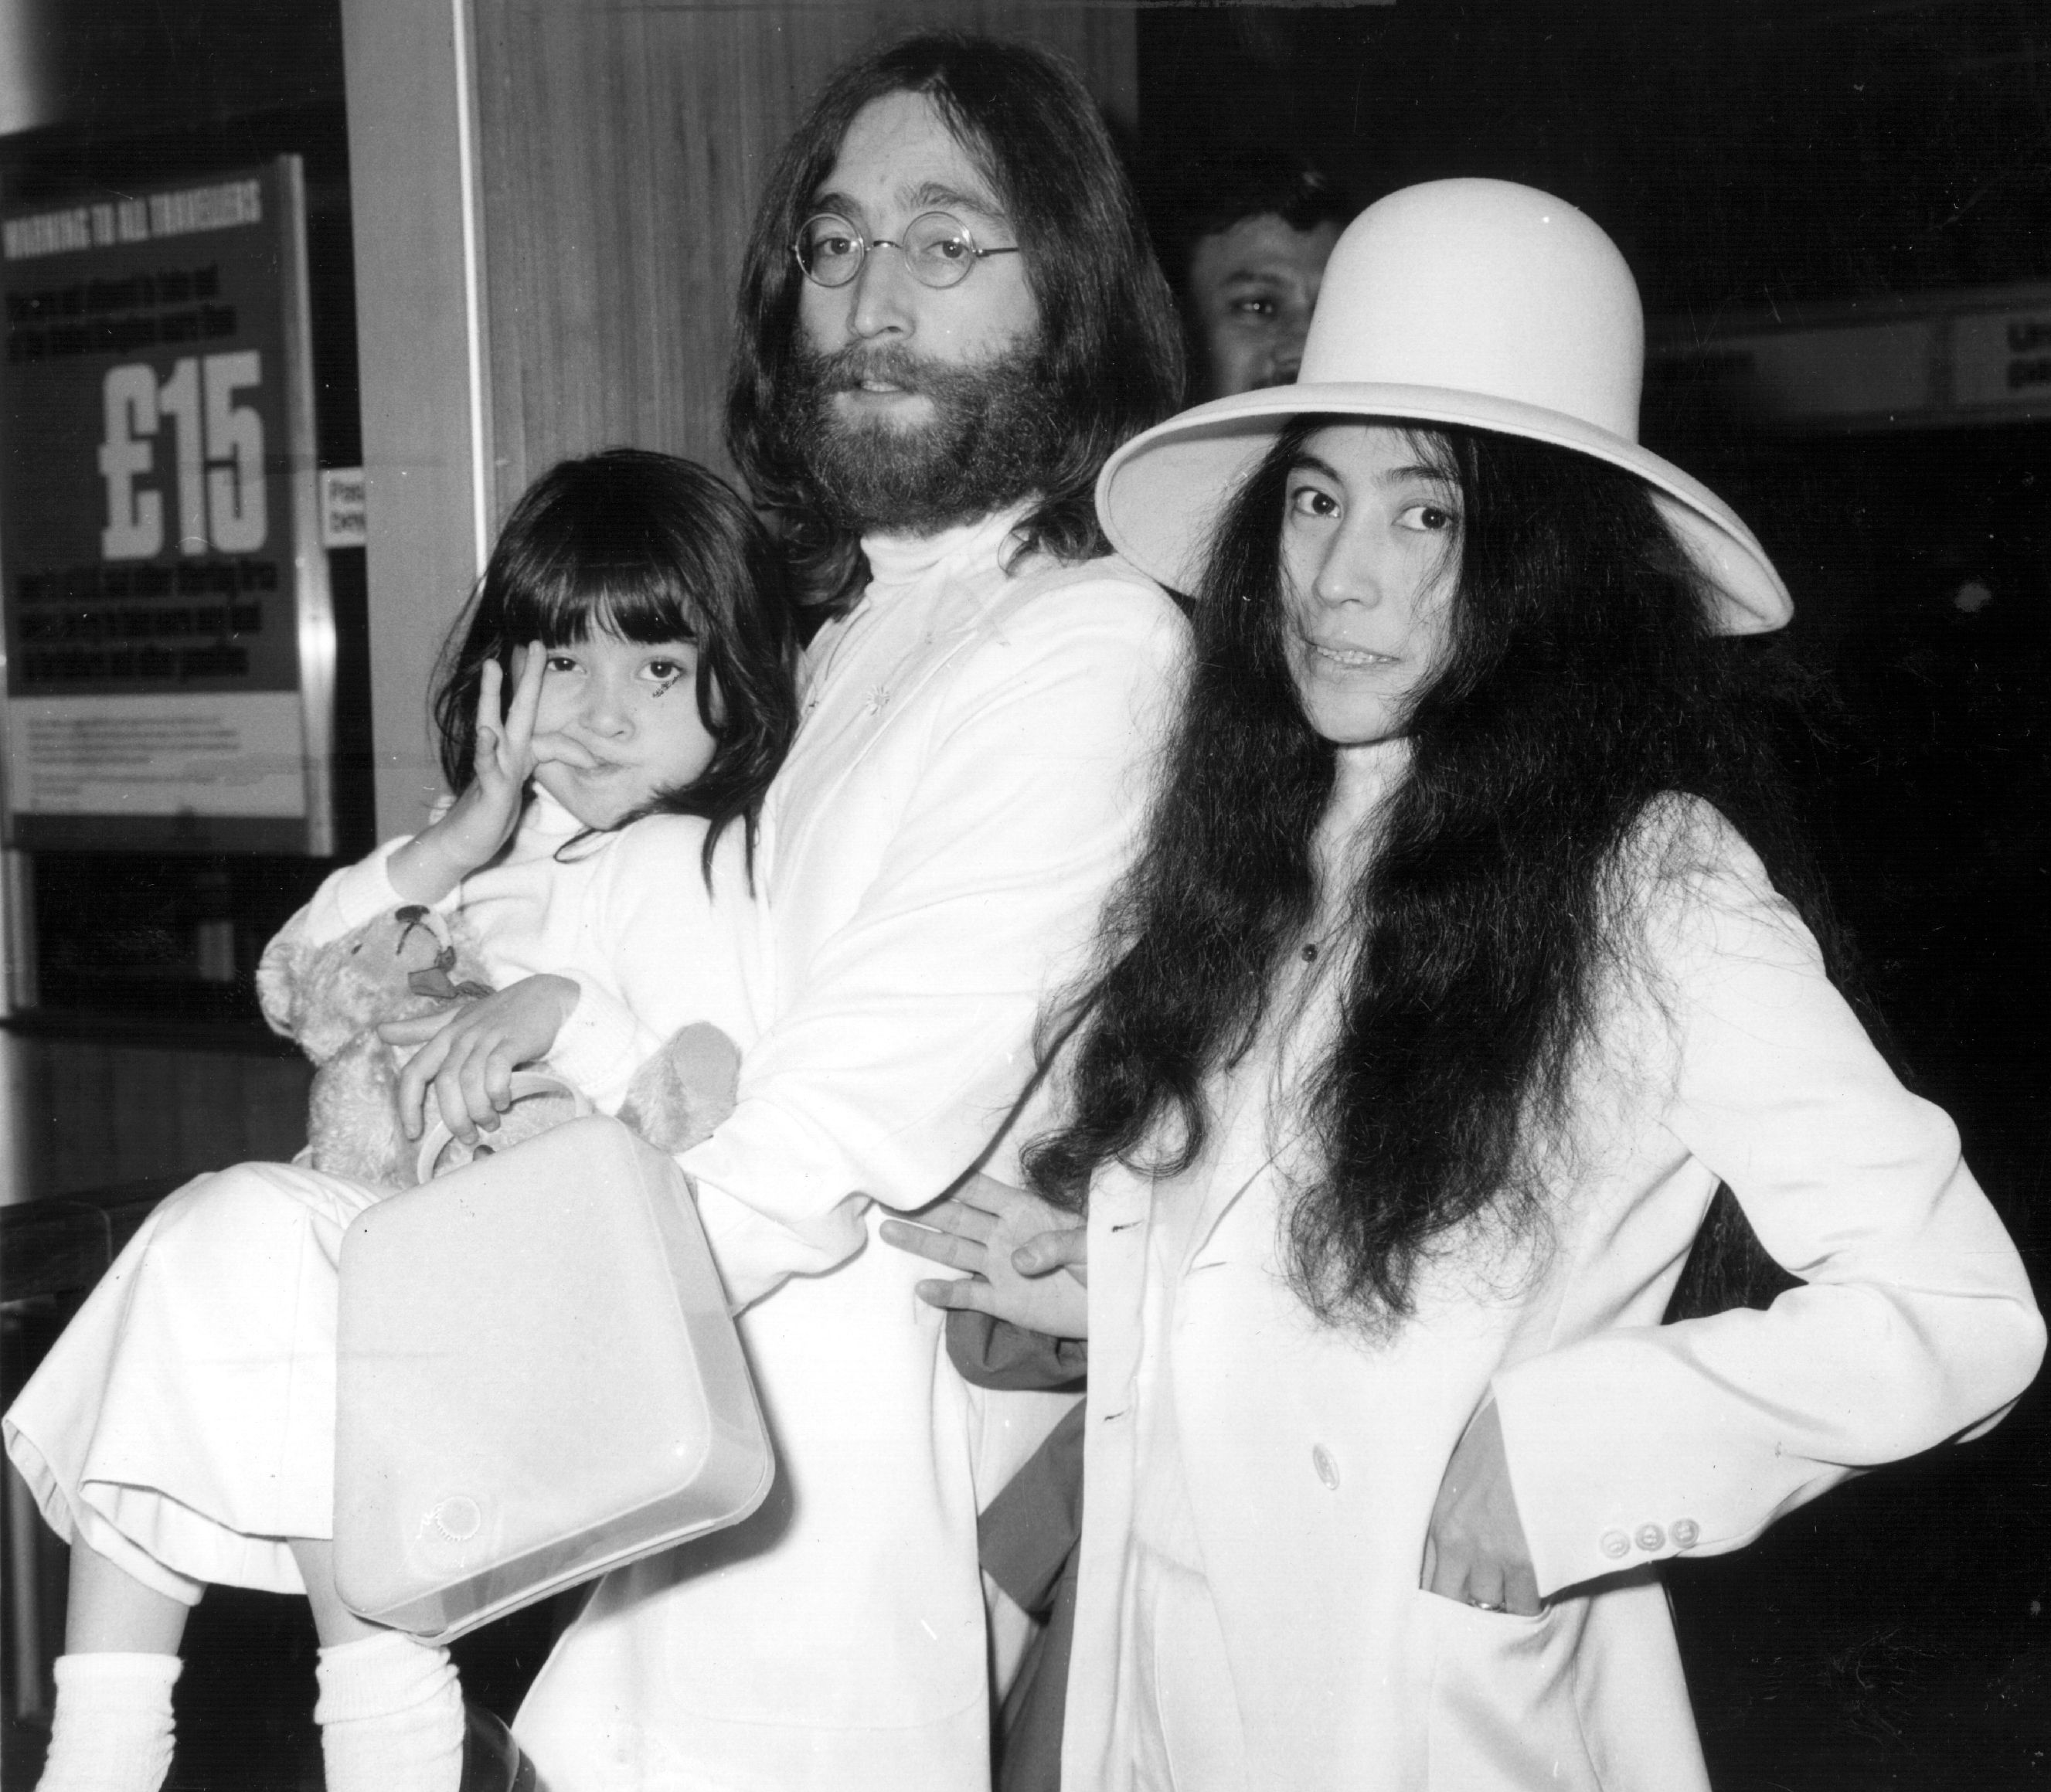 John Lennon and Yoko Ono at London's Heathrow airport with Kyoko in 1969 | Source: Getty Images